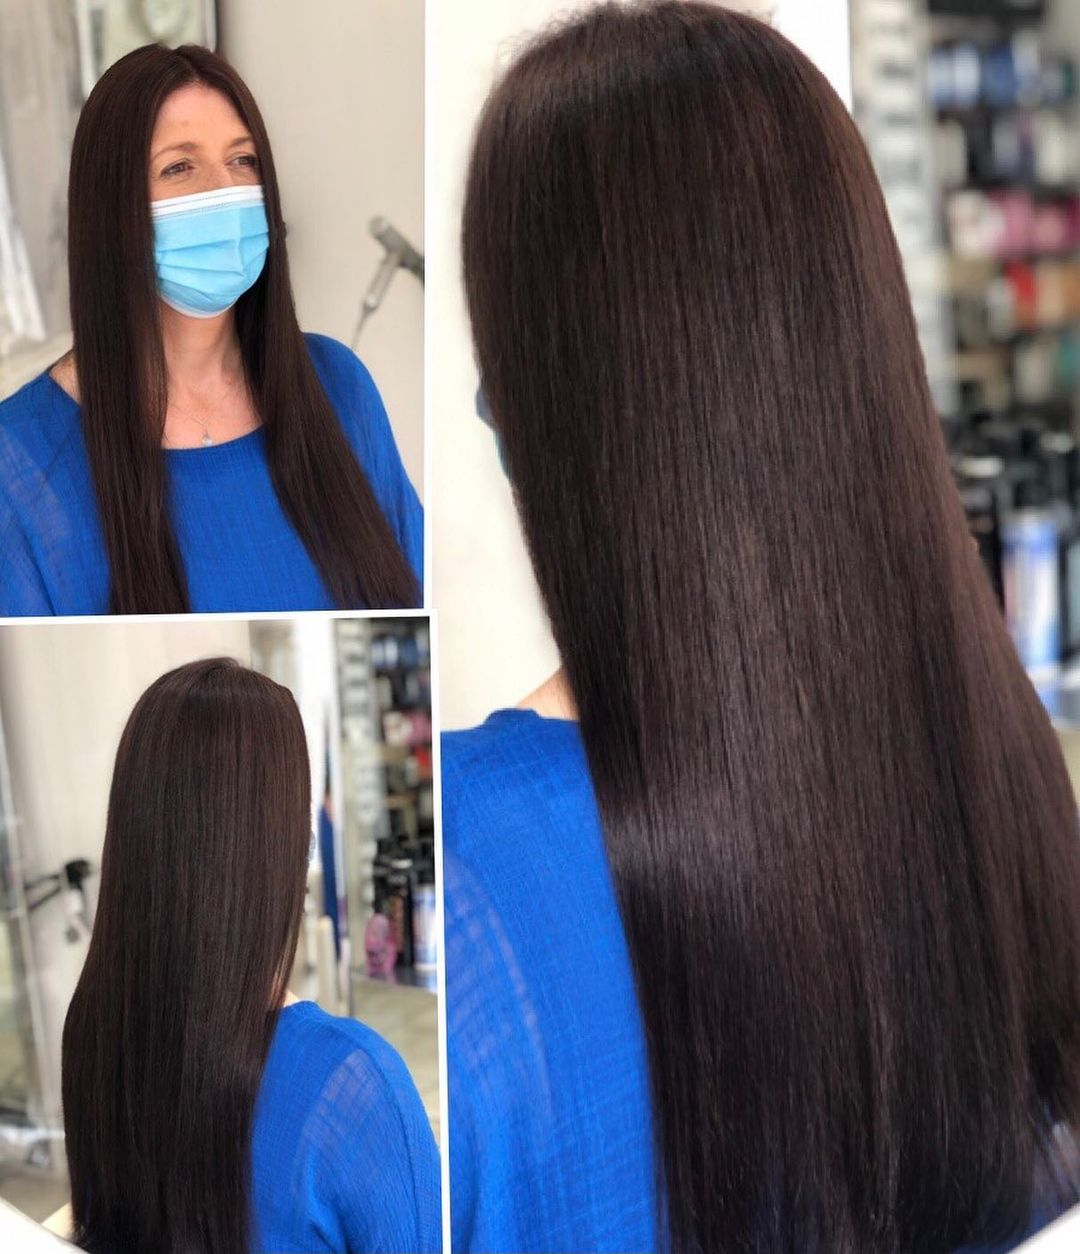 What is a Hair Smoothing Treatment?